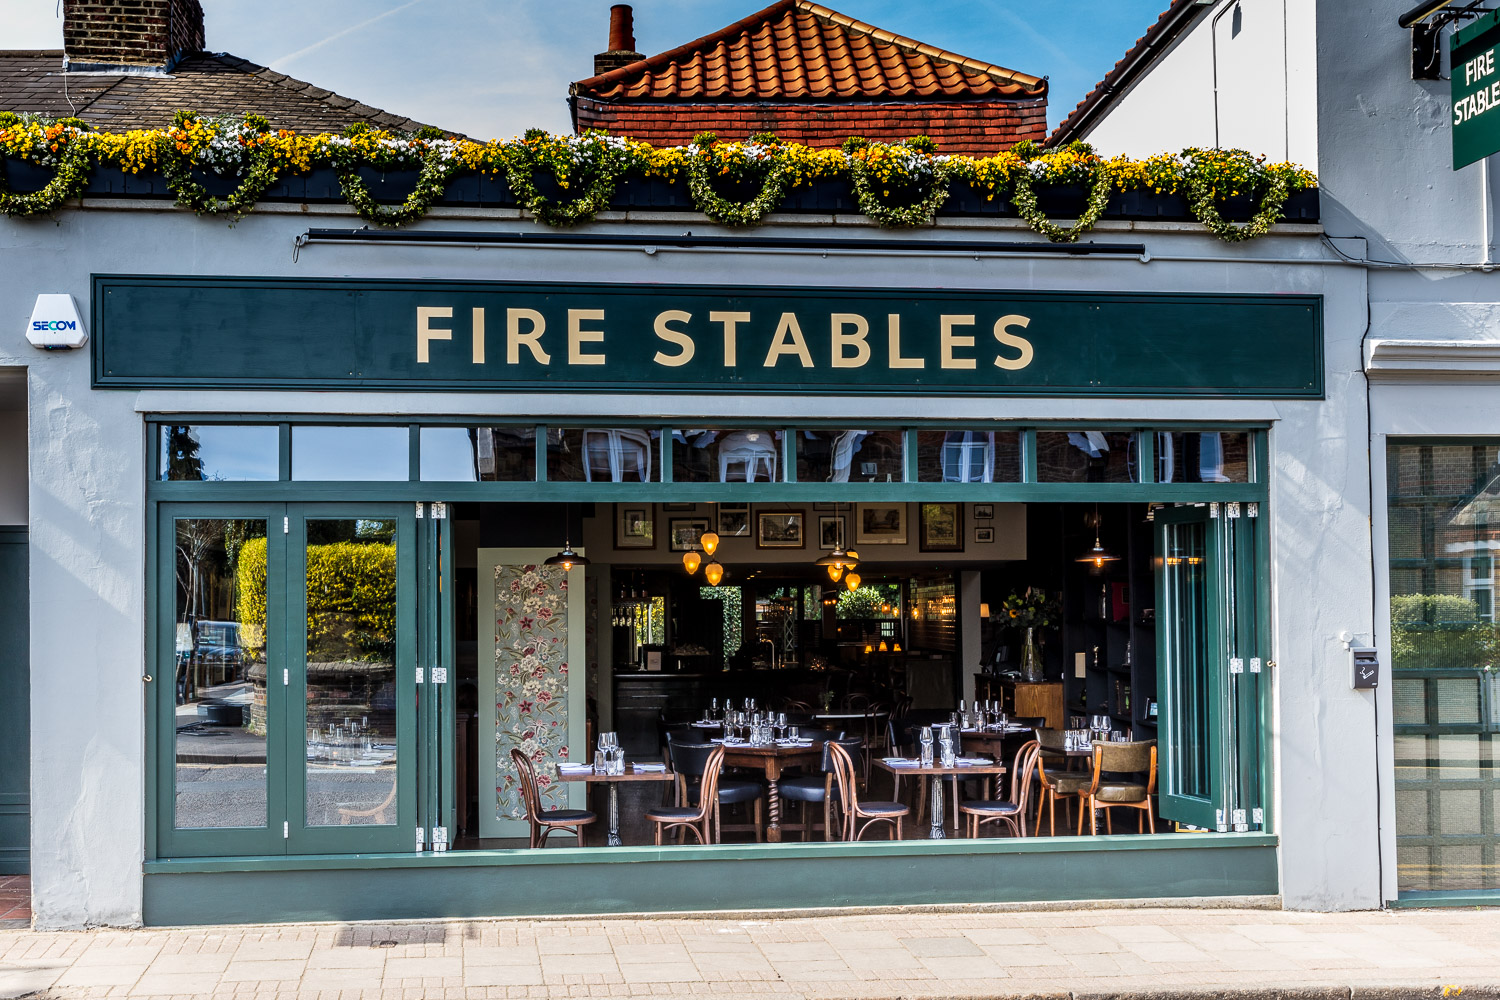 The Fire Stables